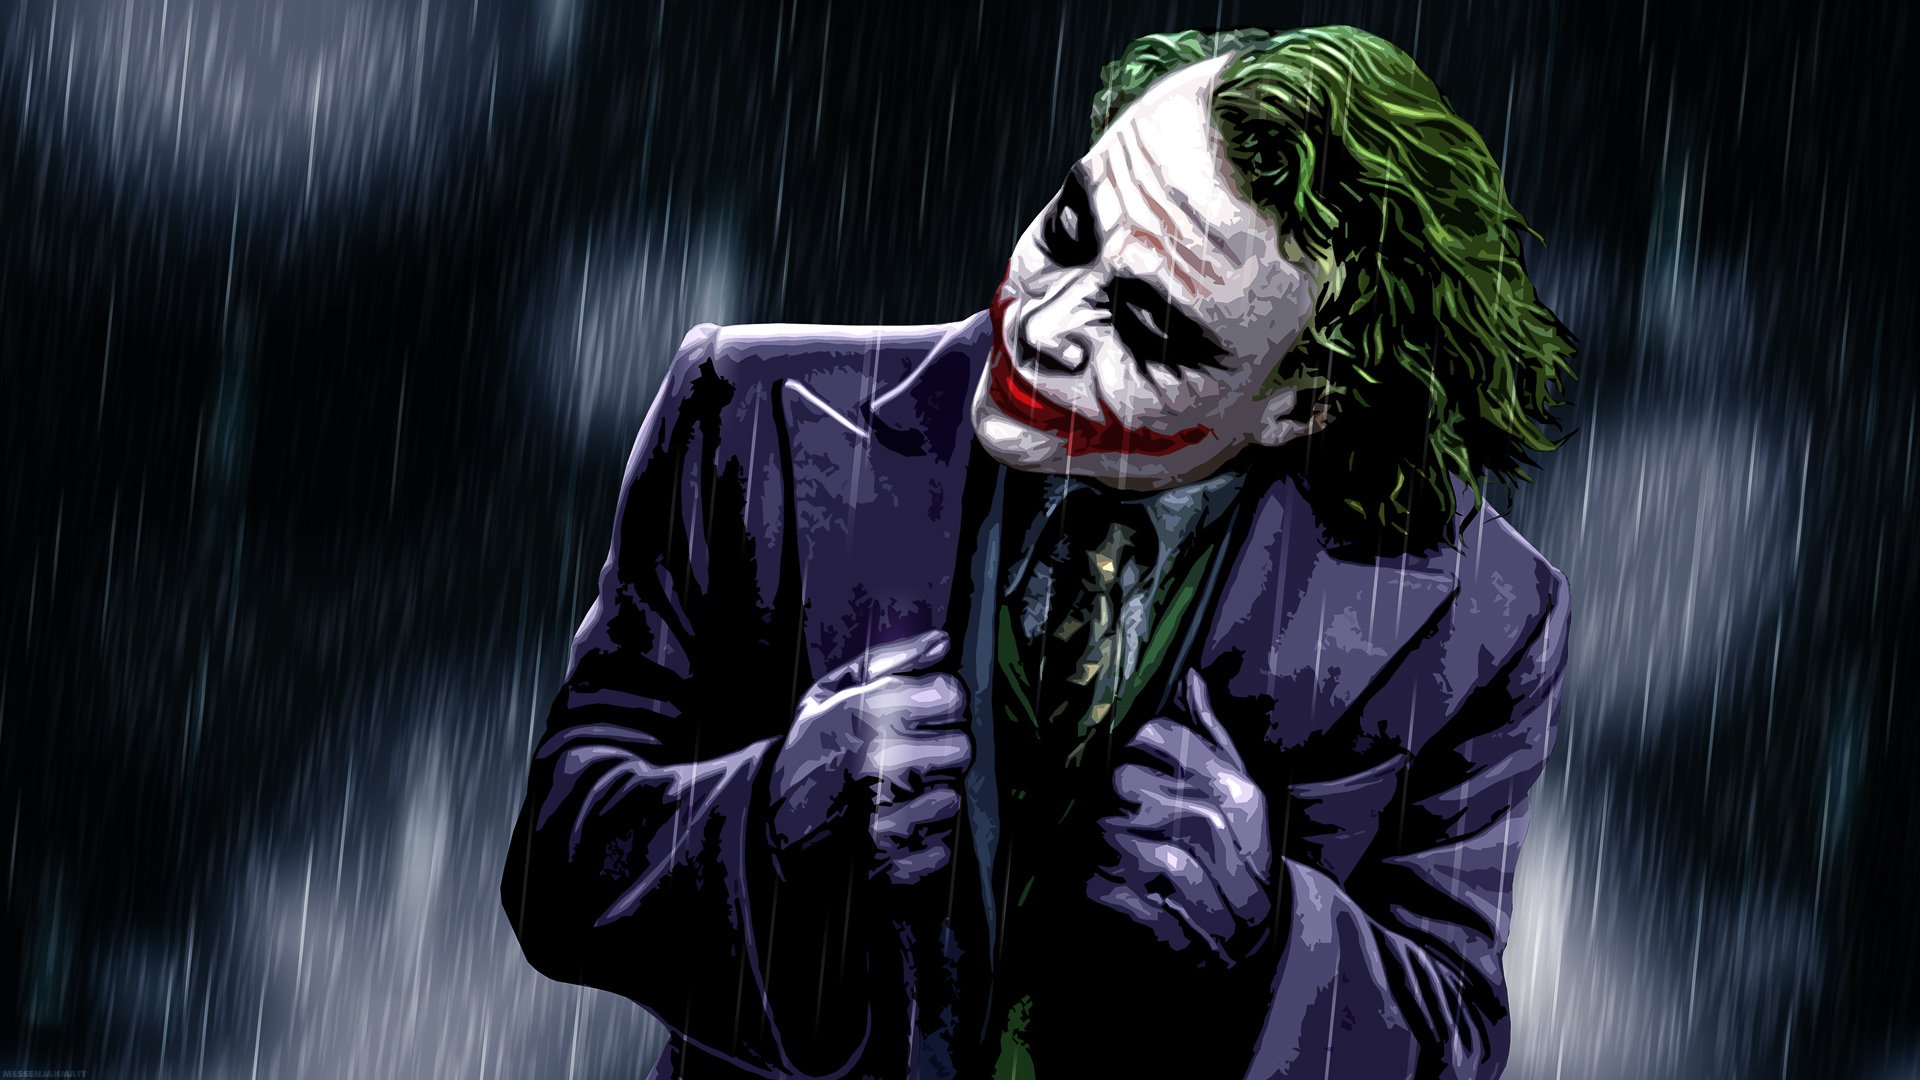 Joker Hd Wallpapers: Joker Wallpapers, Photos And Desktop Backgrounds Up To 8K